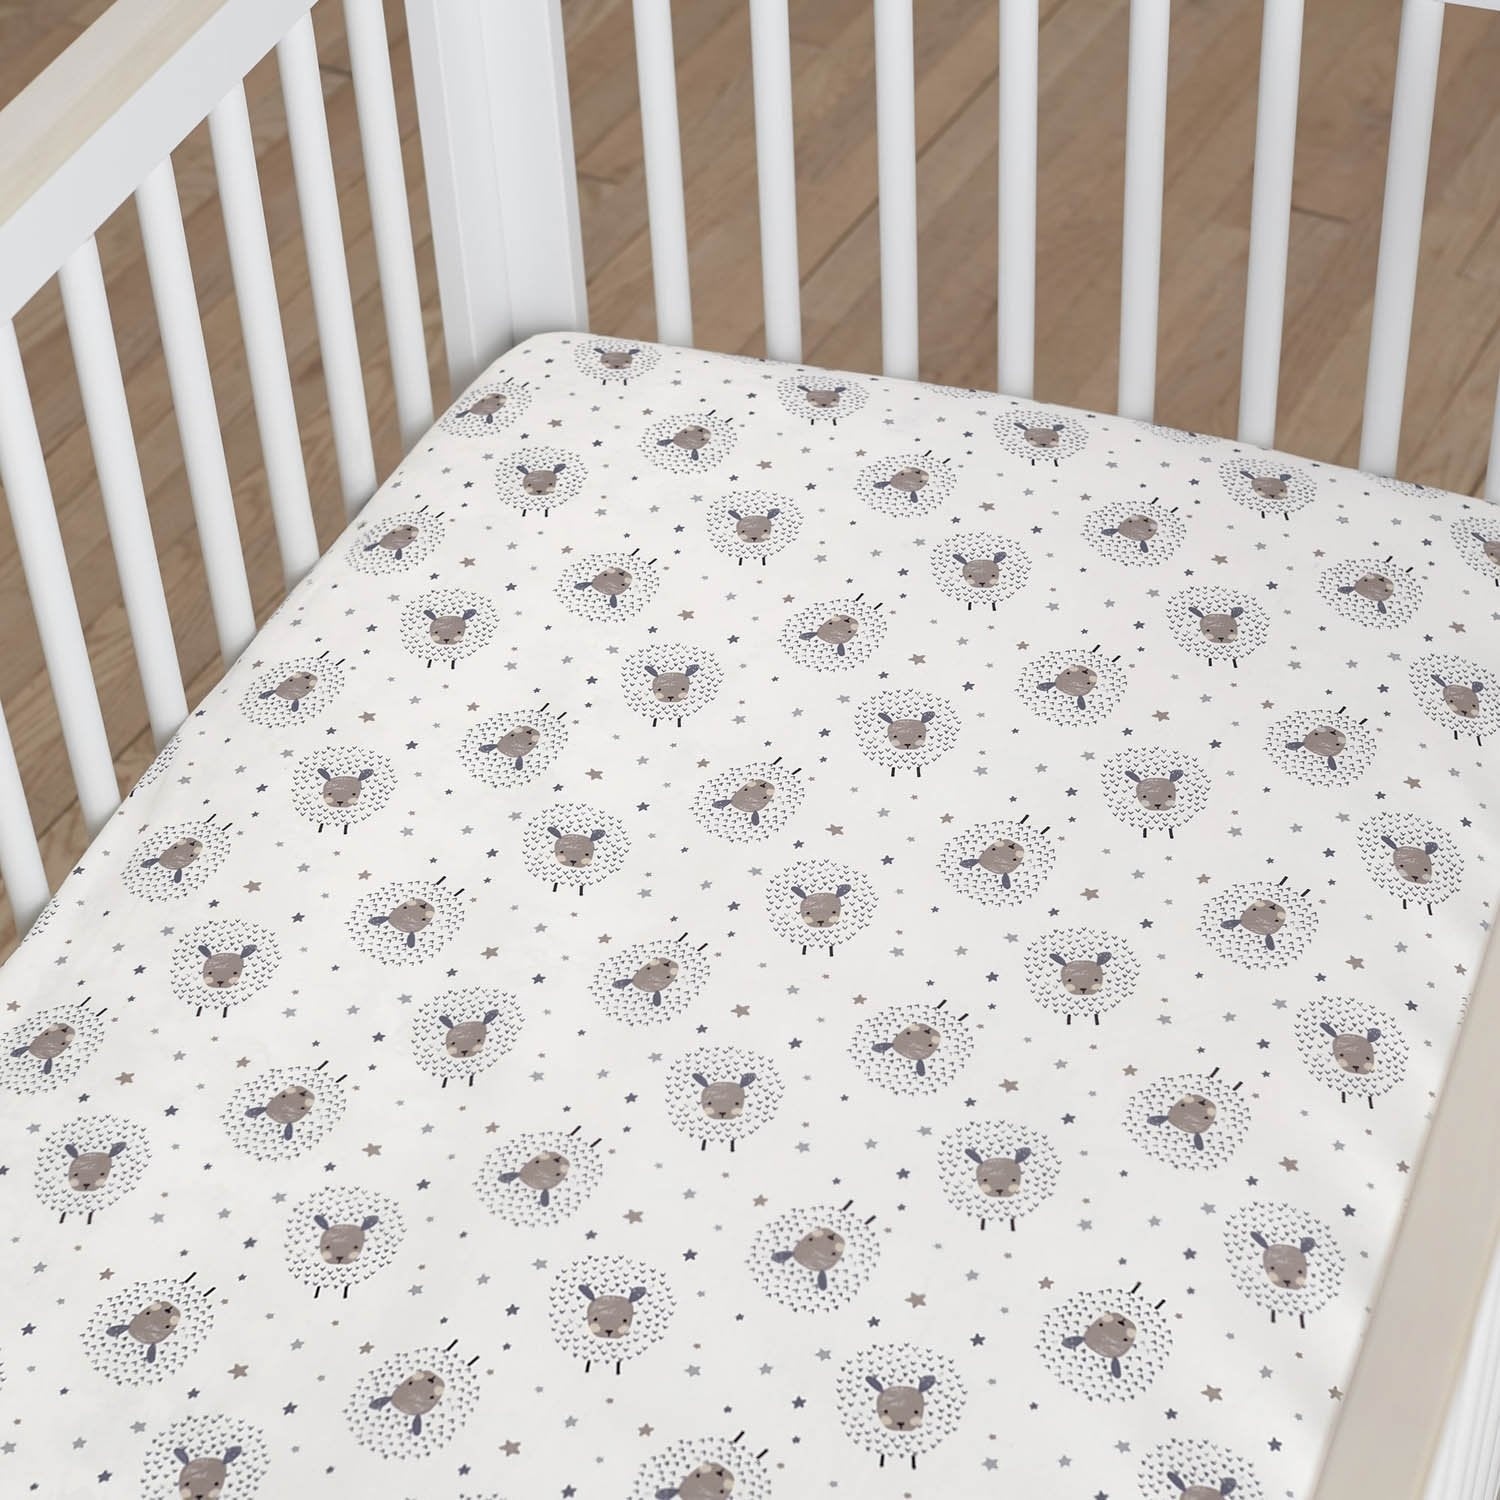 Just Born One World Collection Sheep Fitted Crib Sheet - Counting Sheep-Gerber Childrenswear